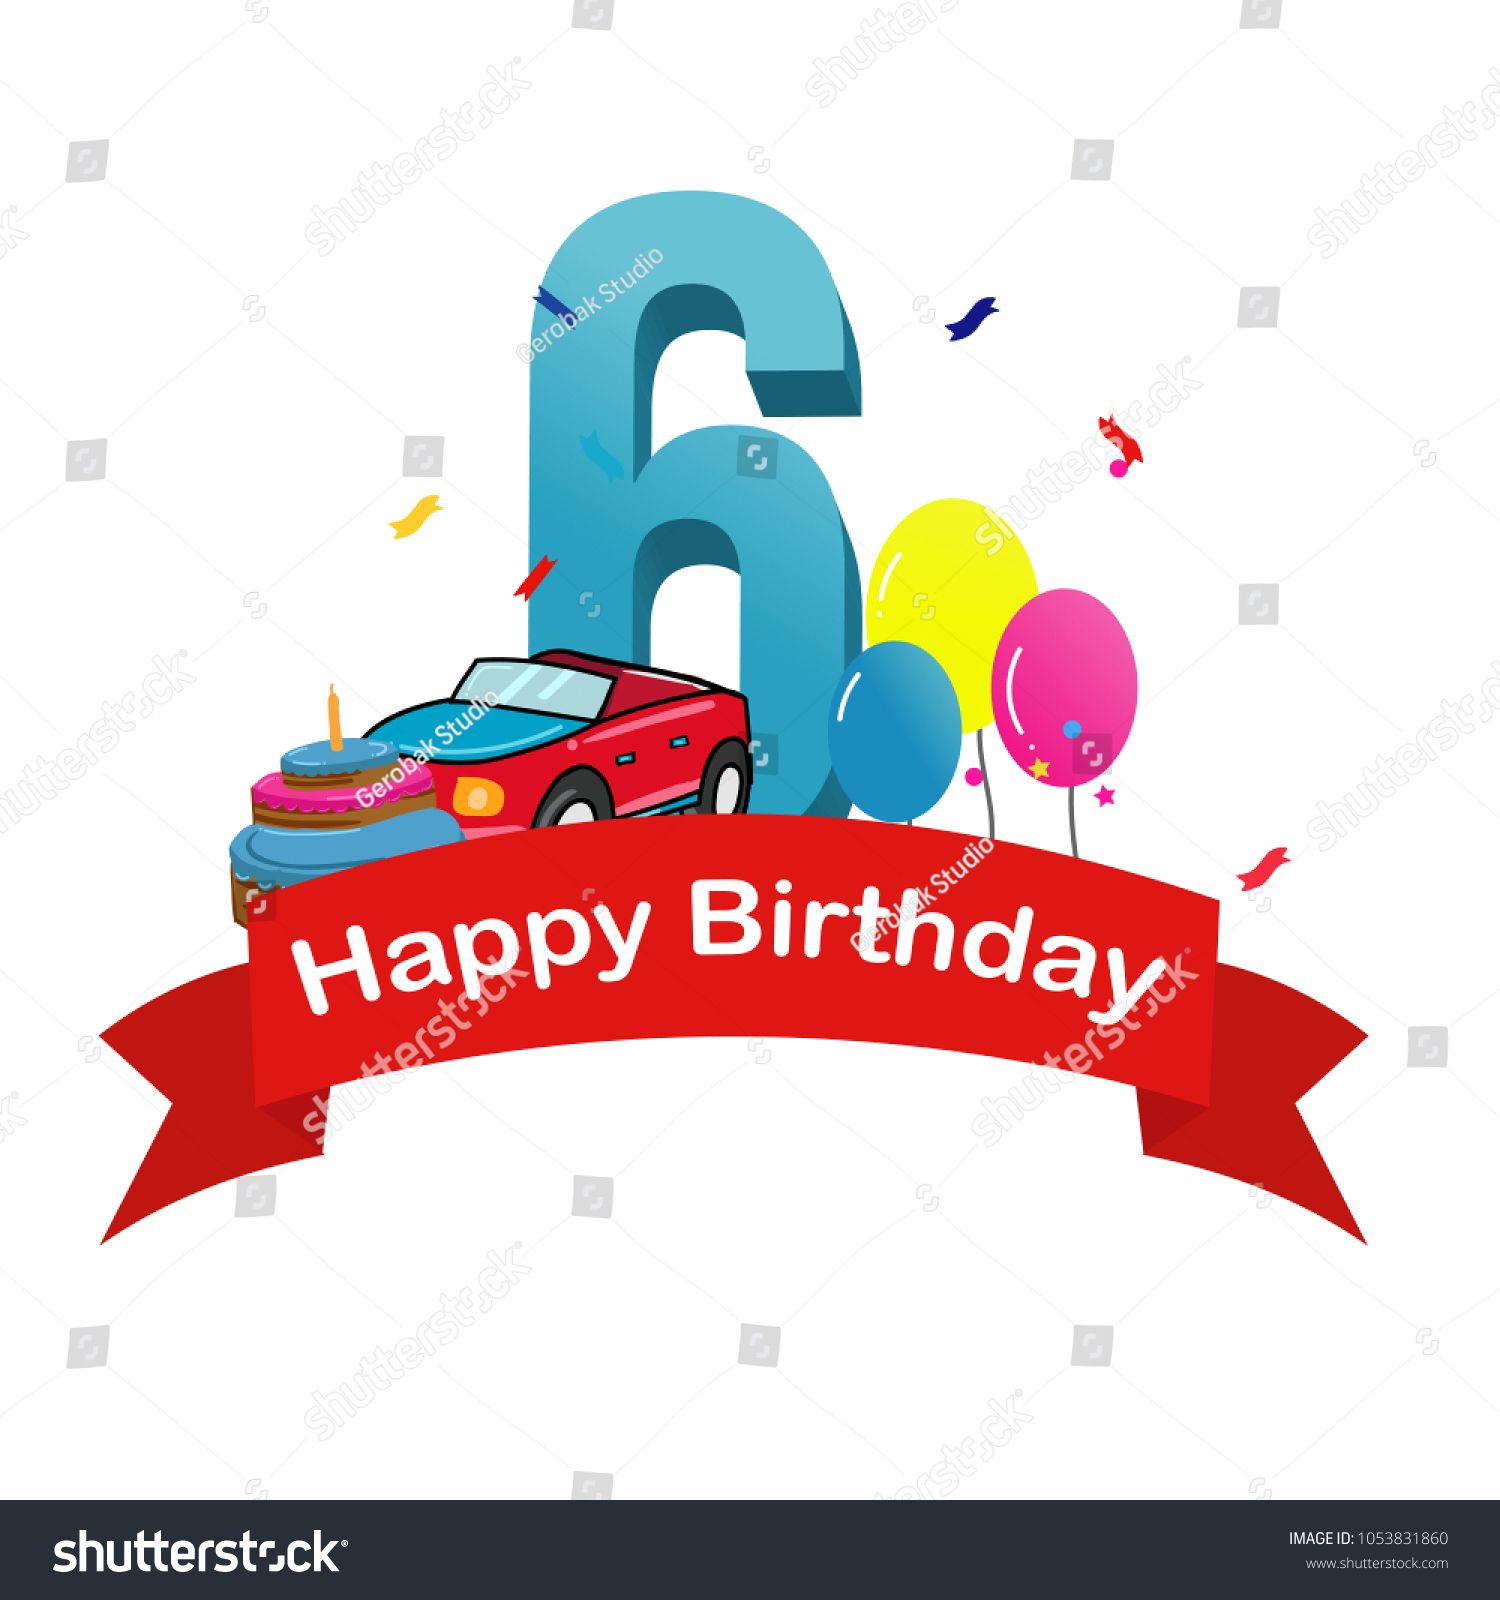 Happy Sixth Birthday Baby Boy Greeting Card With Race Car Cake And Balloons Vector